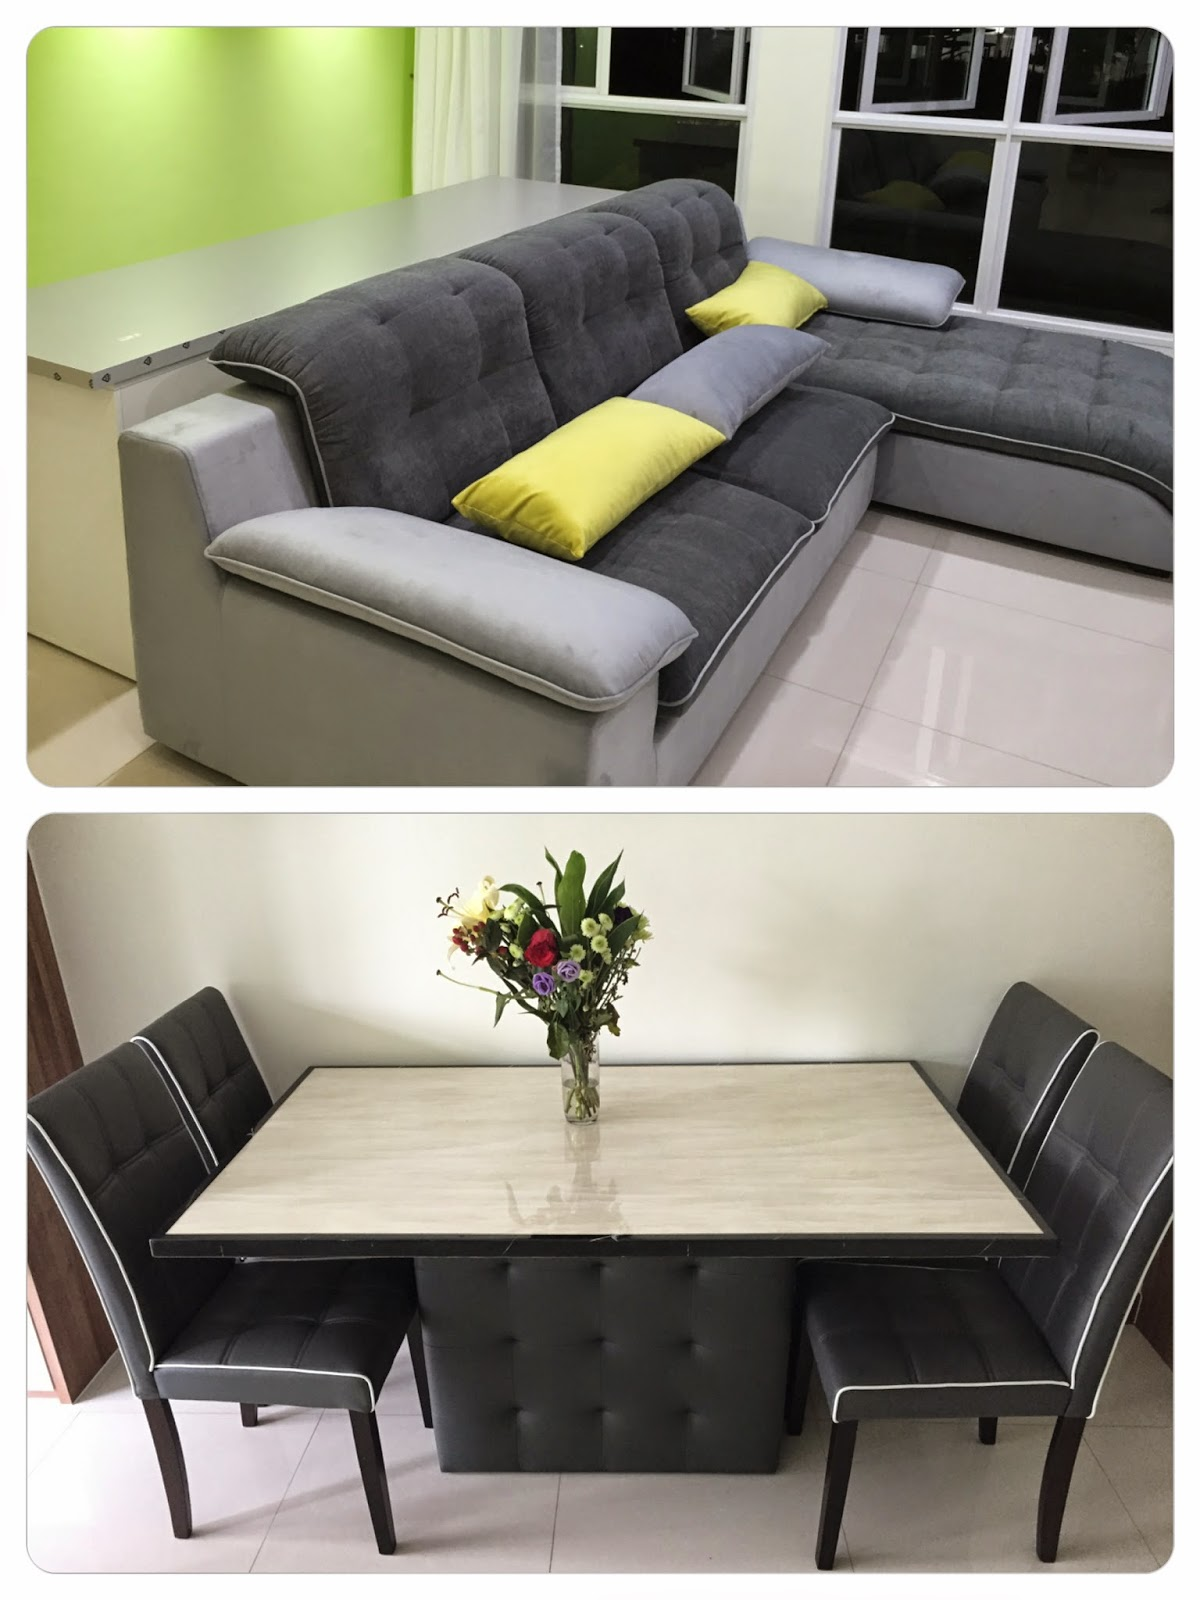 Buying Furnitures From Malaysia